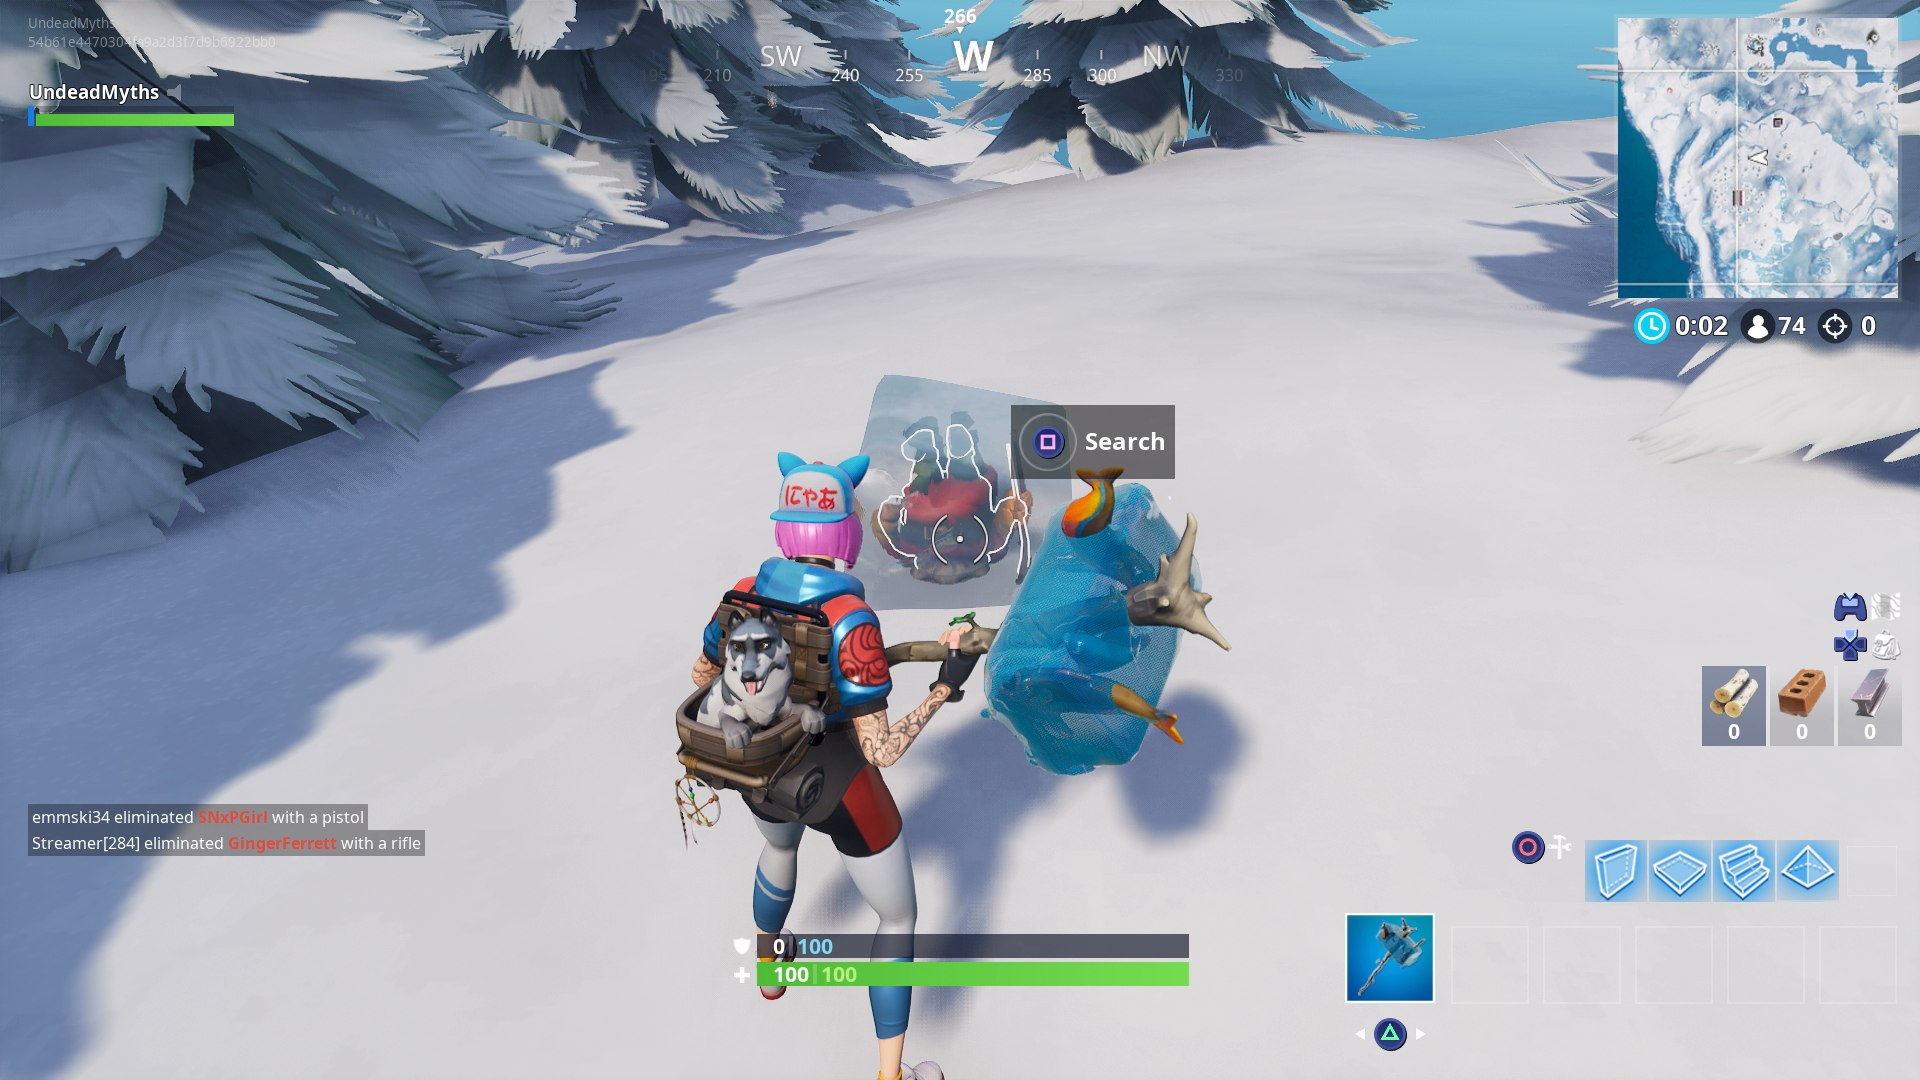 Fortnite Chilly Gnome Locations Where To Search Chilly